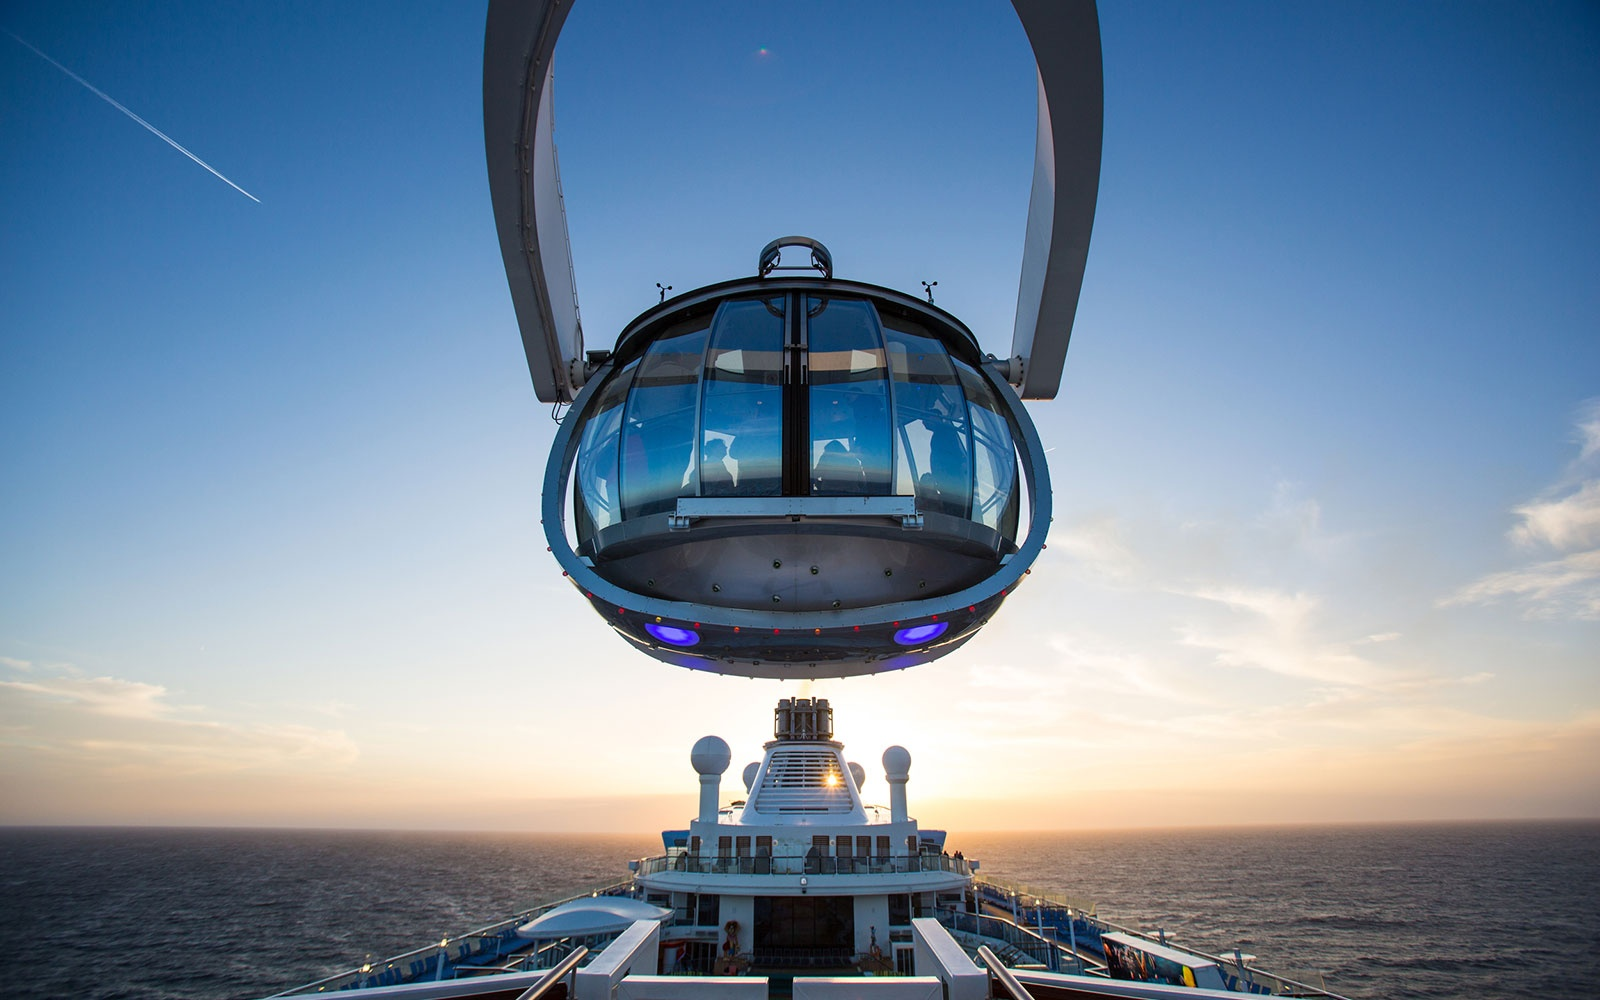 'North Star' on Royal Caribbean's Quantum of the Seas and Anthem of the Seas